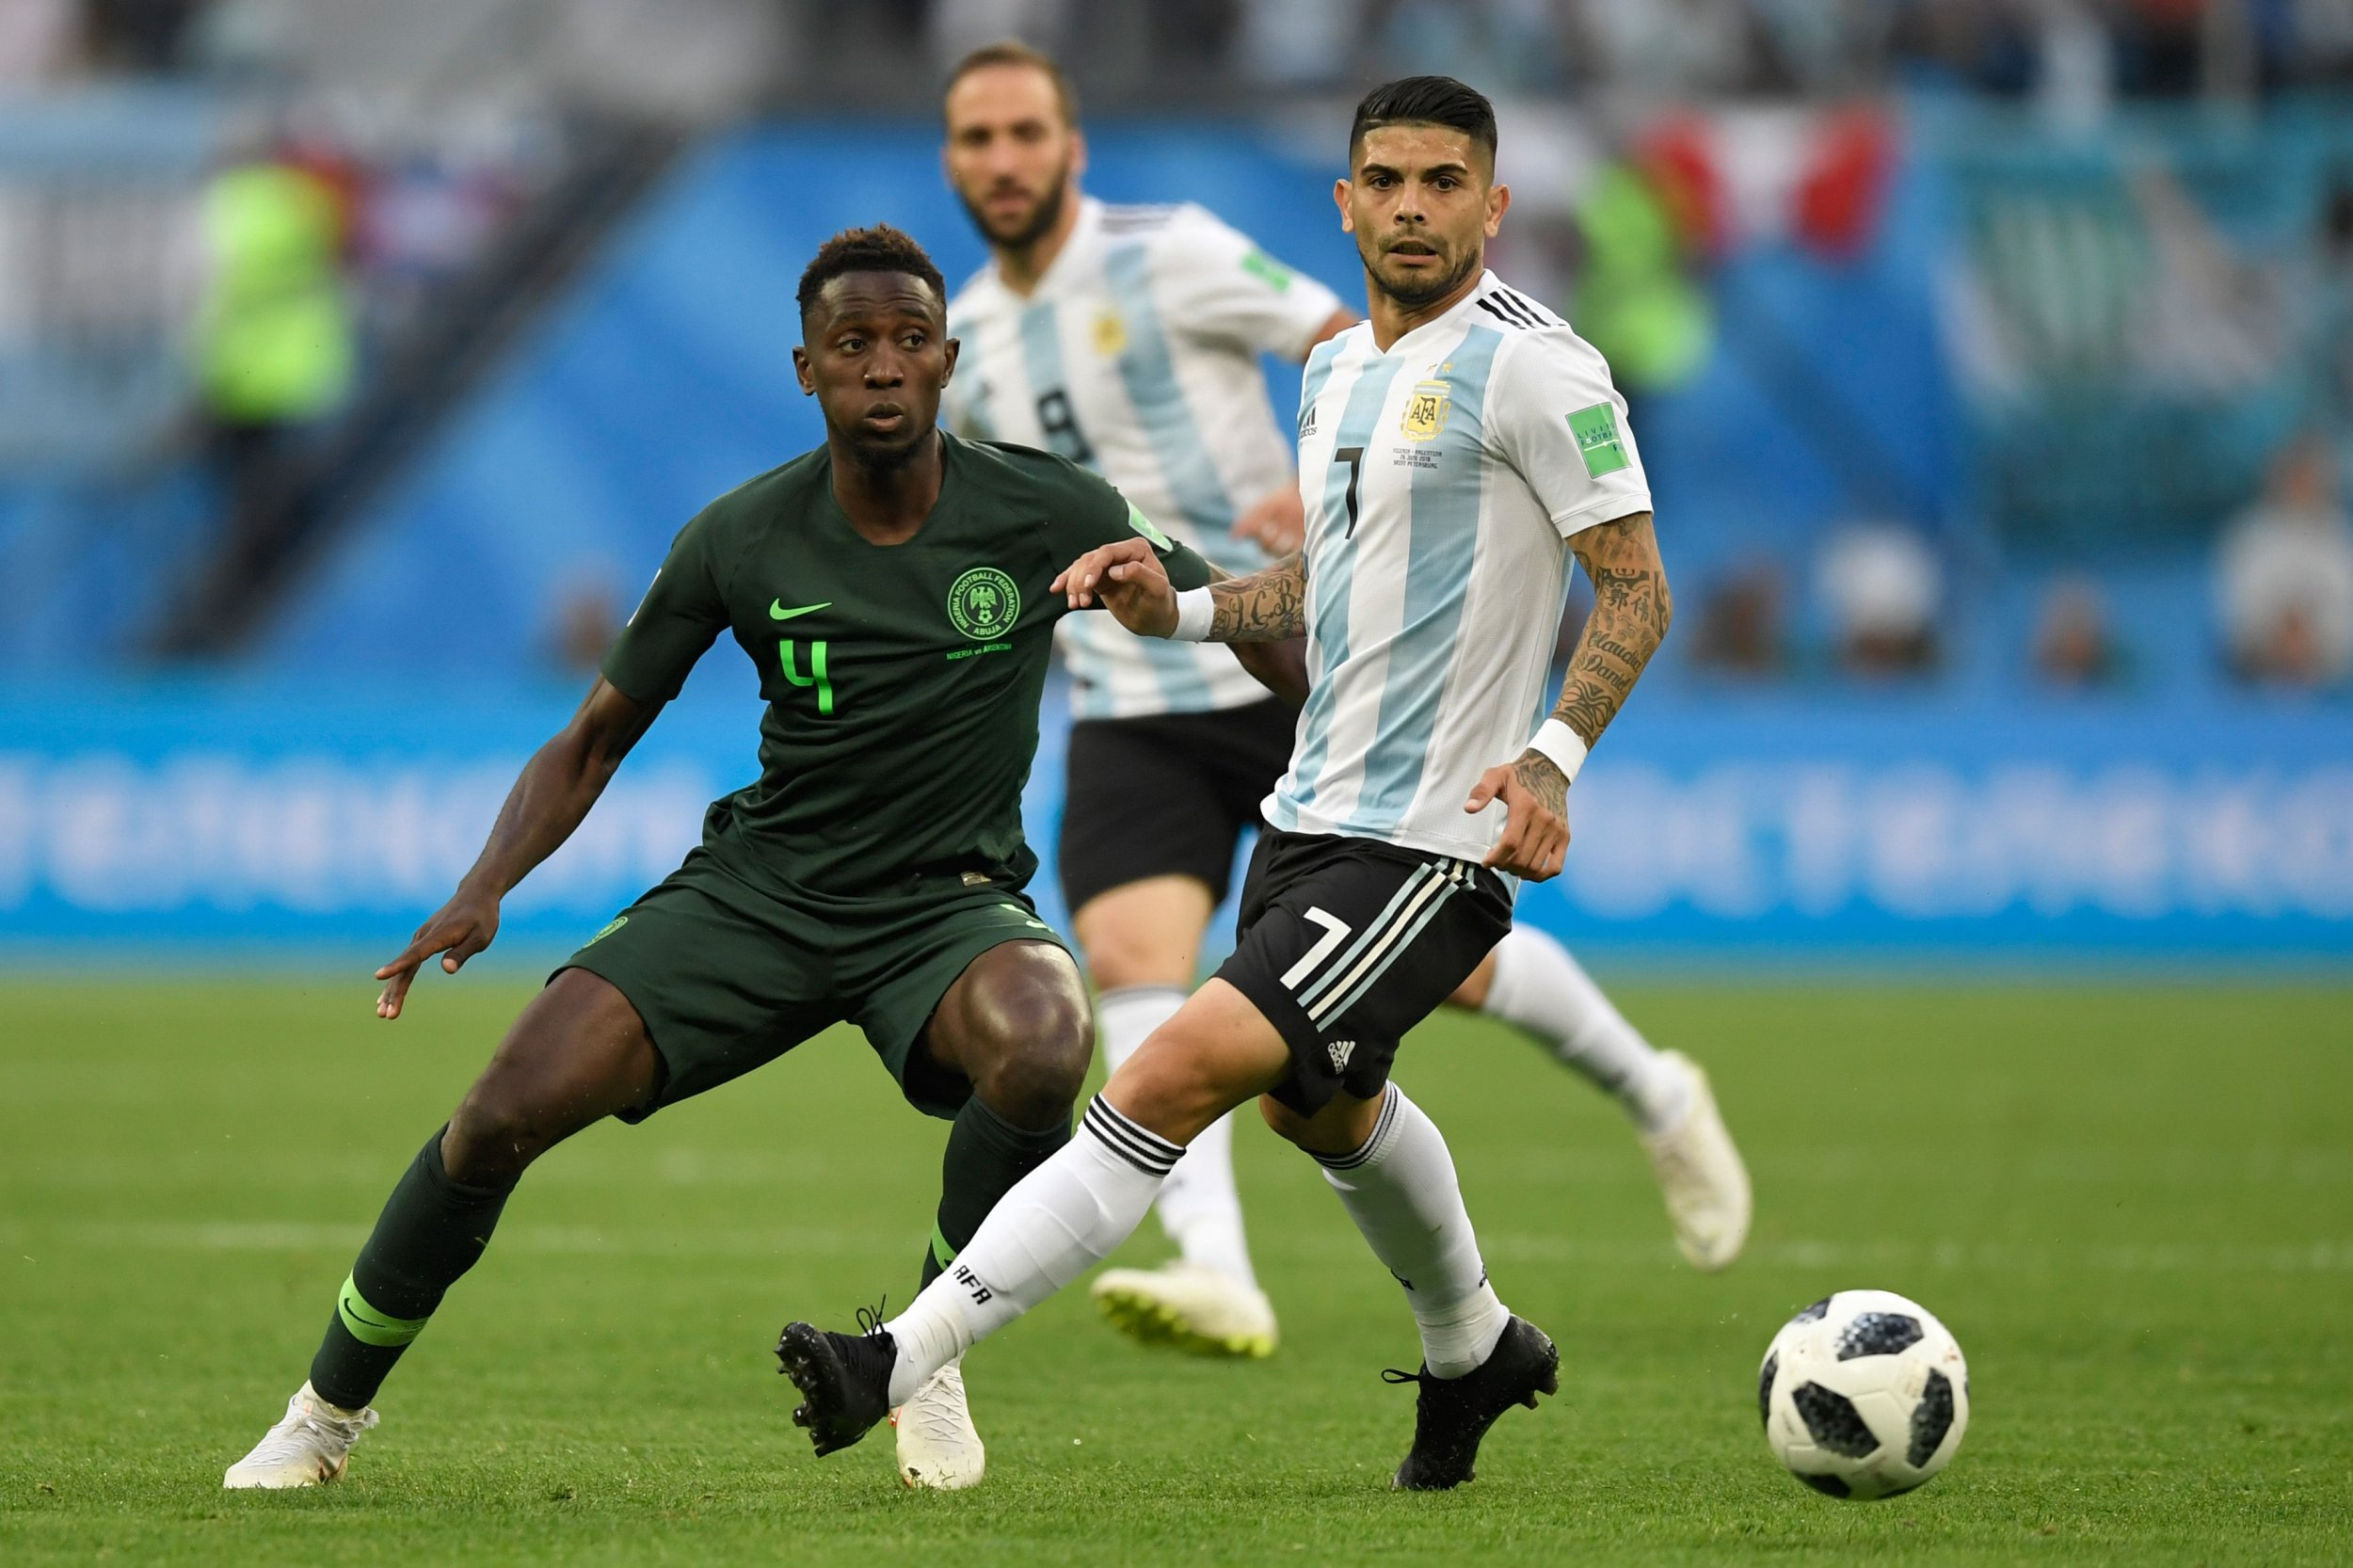 Nigeria's midfielder Onyinye Ndidi (L) and Argentina's midfielder Ever Banega compete for the ball during the Russia 2018 World Cup Group D football match between Nigeria and Argentina at the Saint Petersburg Stadium in Saint Petersburg on June 26, 2018. / AFP PHOTO / GABRIEL BOUYS / RESTRICTED TO EDITORIAL USE - NO MOBILE PUSH ALERTS/DOWNLOADSGABRIEL BOUYS/AFP/Getty Images